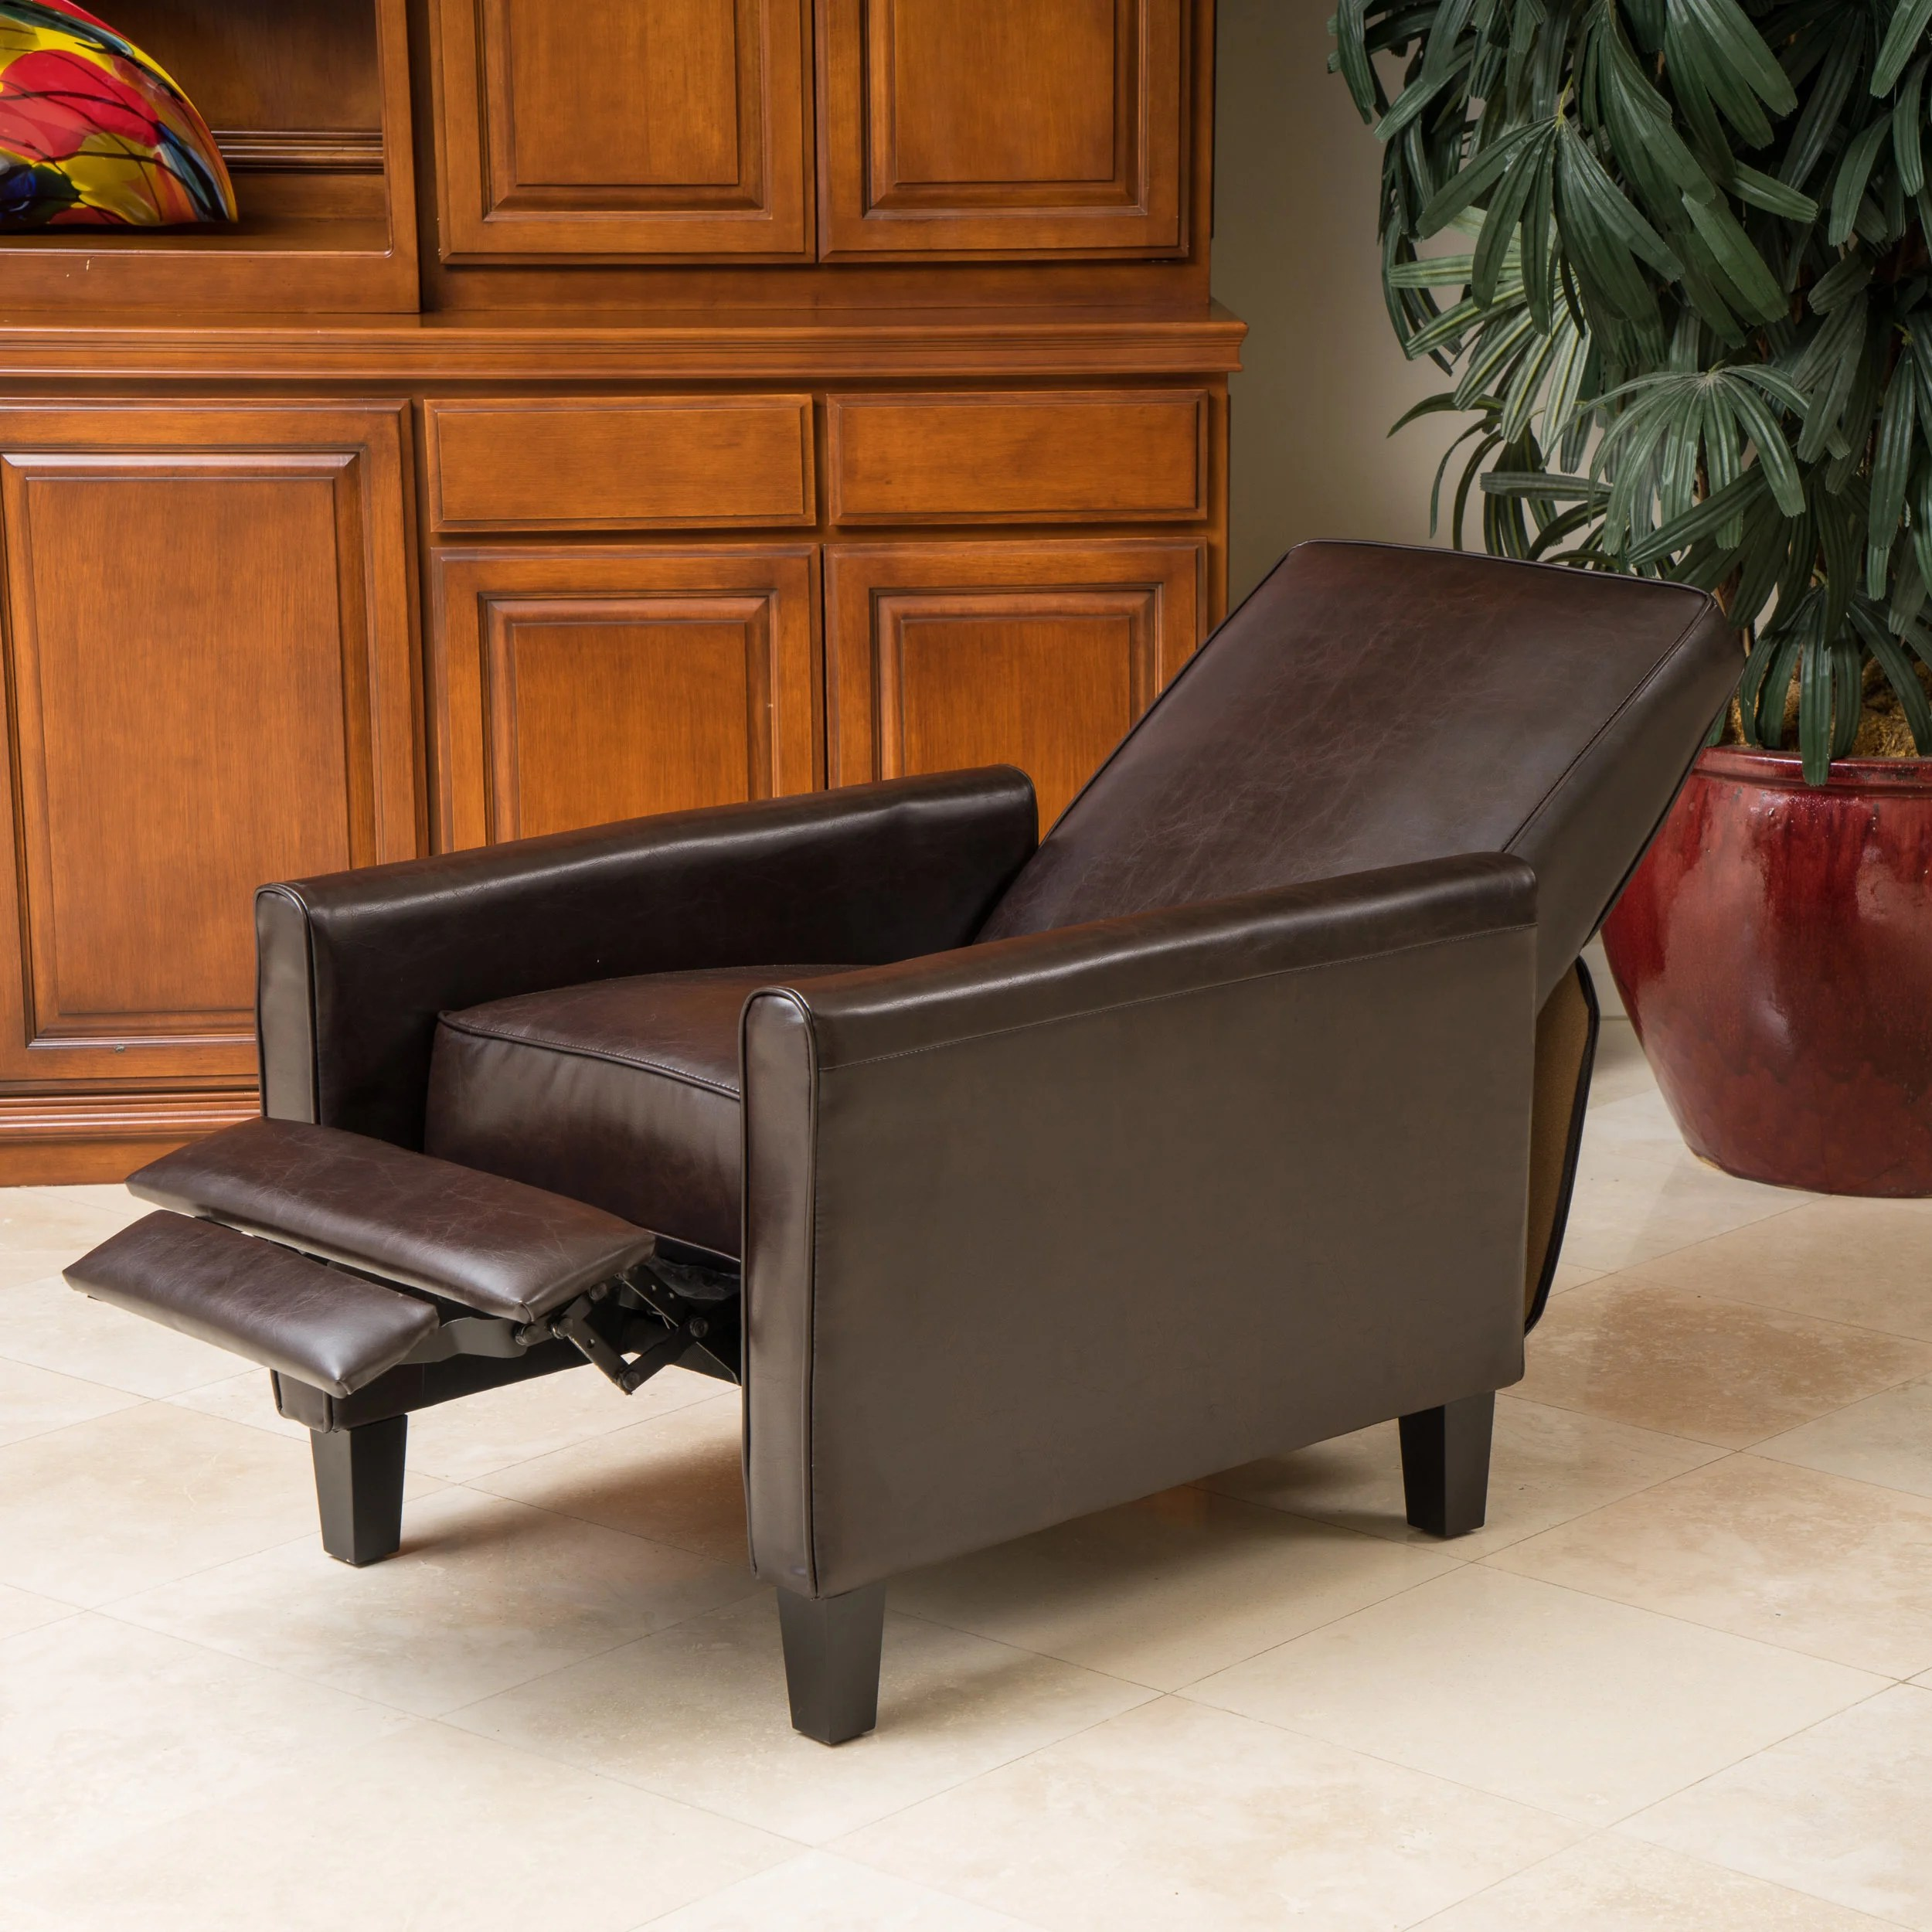 Comfortable Den Furniture Brand New Soft Leather Recliner Club Chair Home